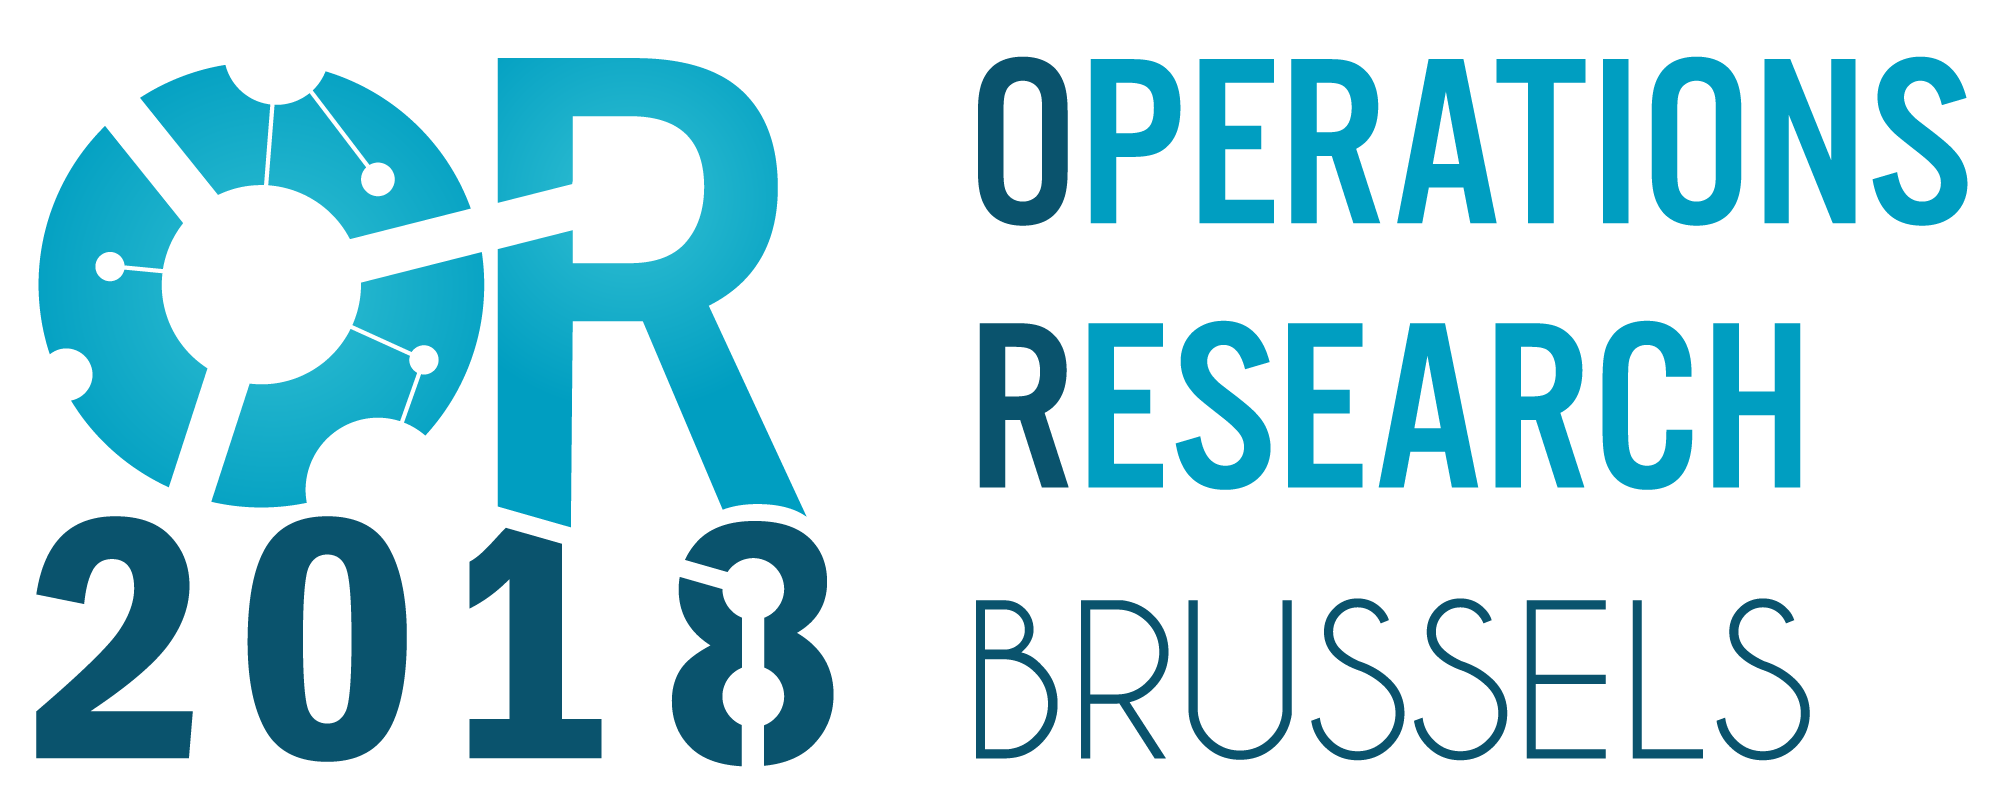 Operations Research 2018 conference Abstract Submission